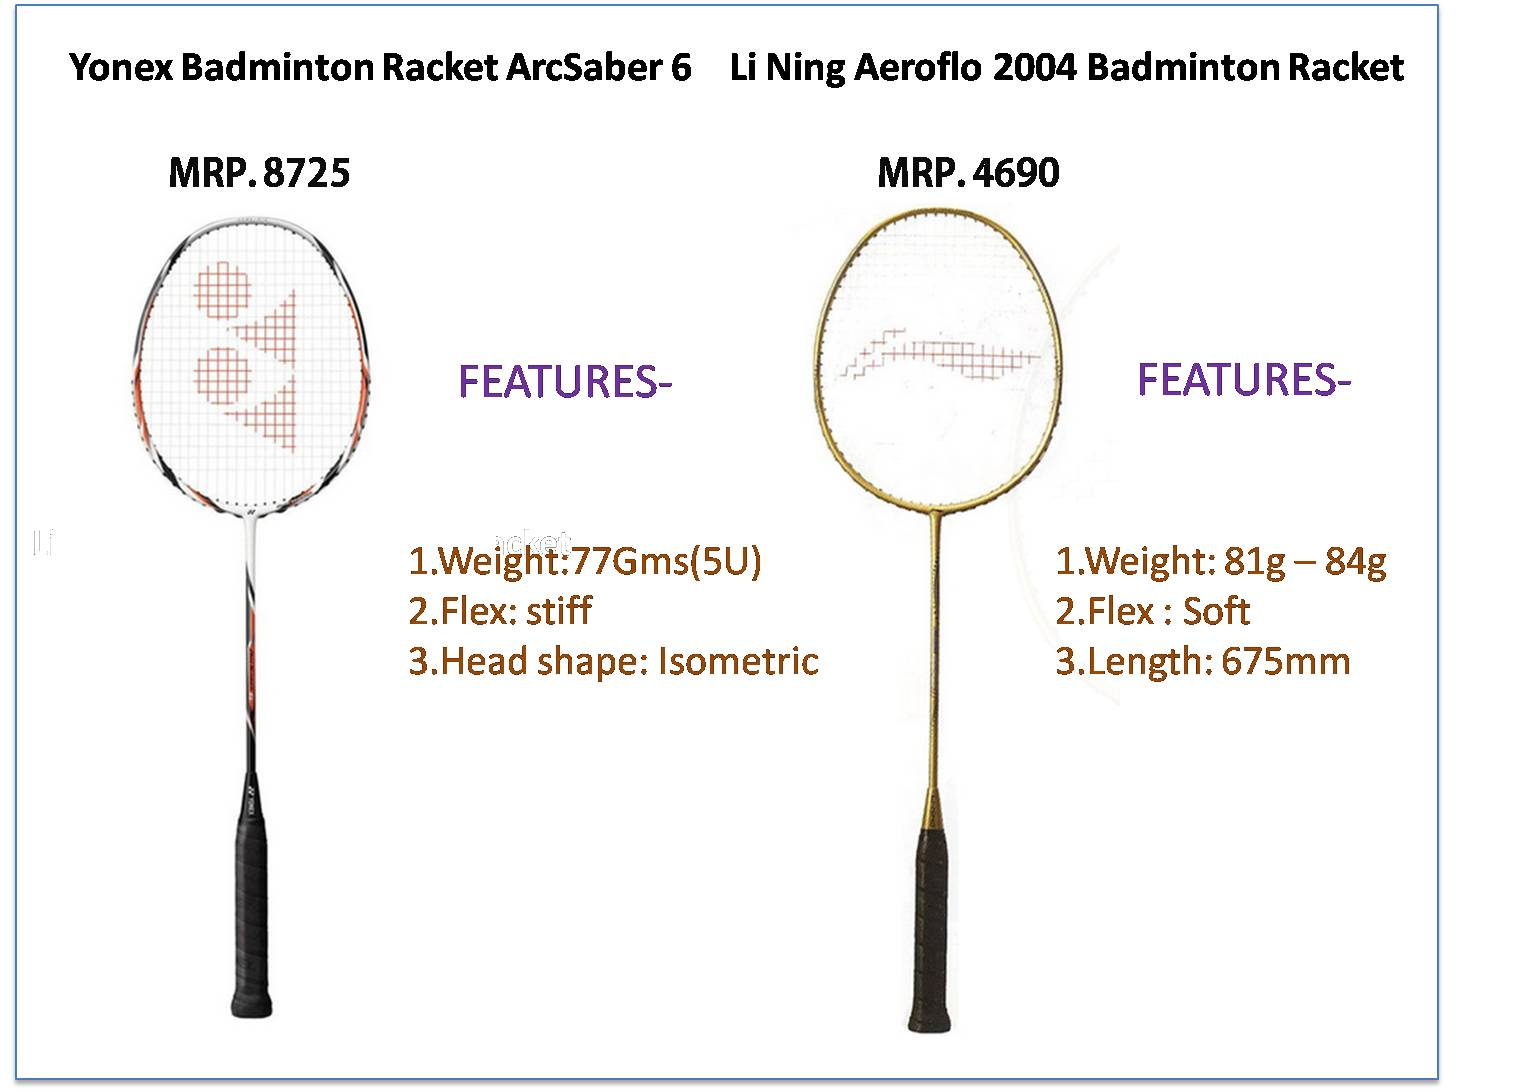 Difference betweenYonex  arcsaber 6 and lining 2004 badminton bat